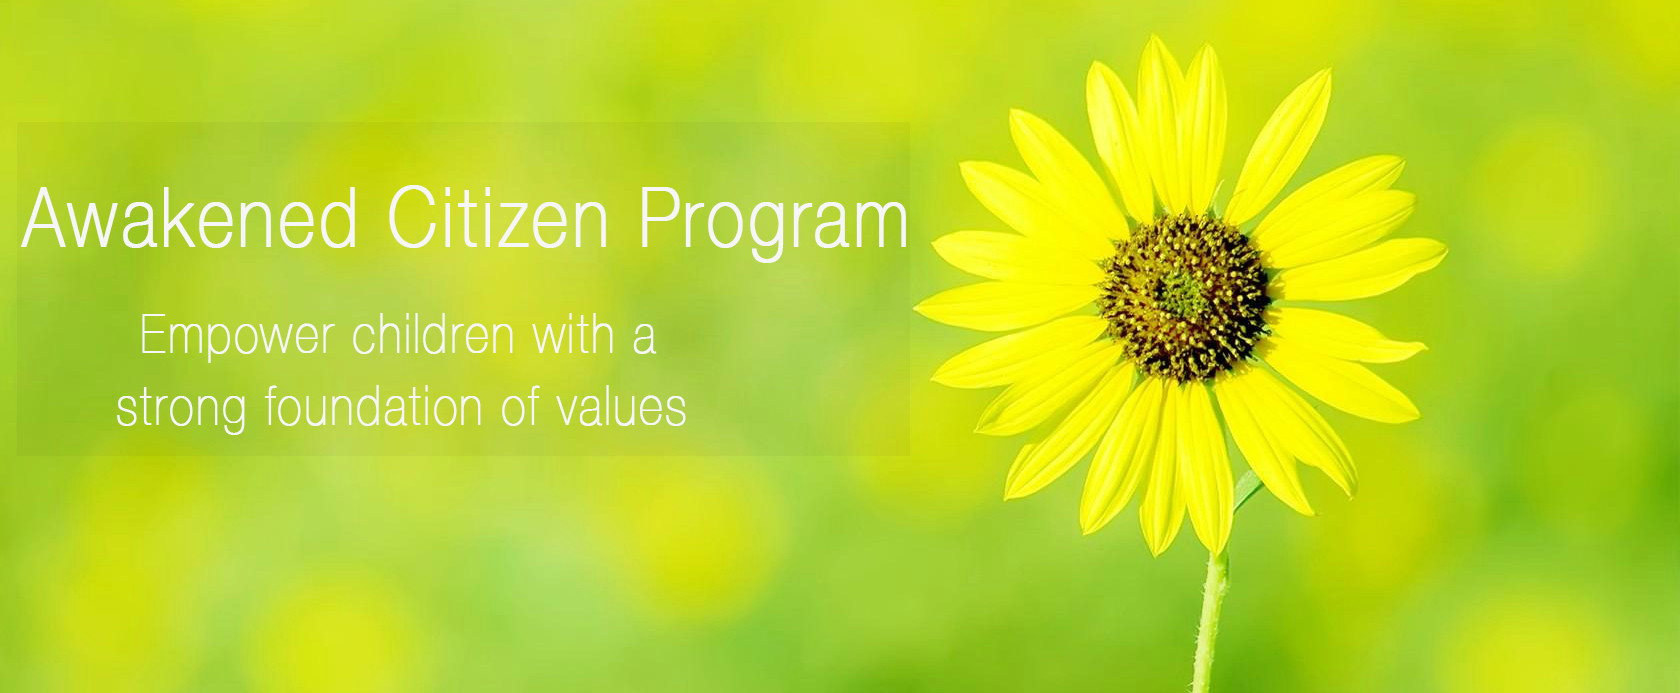 Awakened Citizen Program: Empower Children with a Strong Foundation of Values